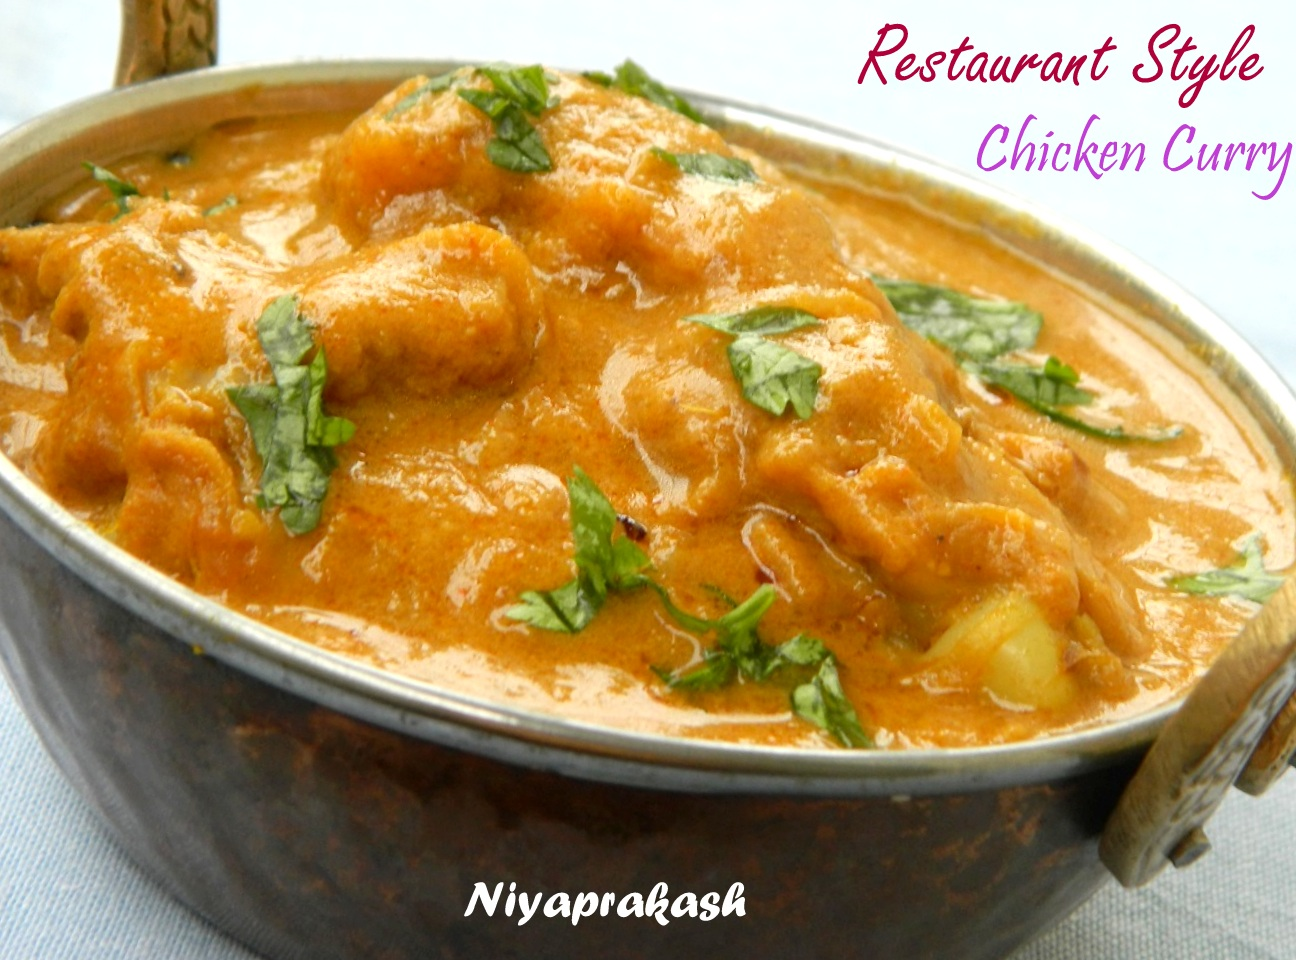 Niya's World: Restaurant Style Chicken Curry (2nd recipe)